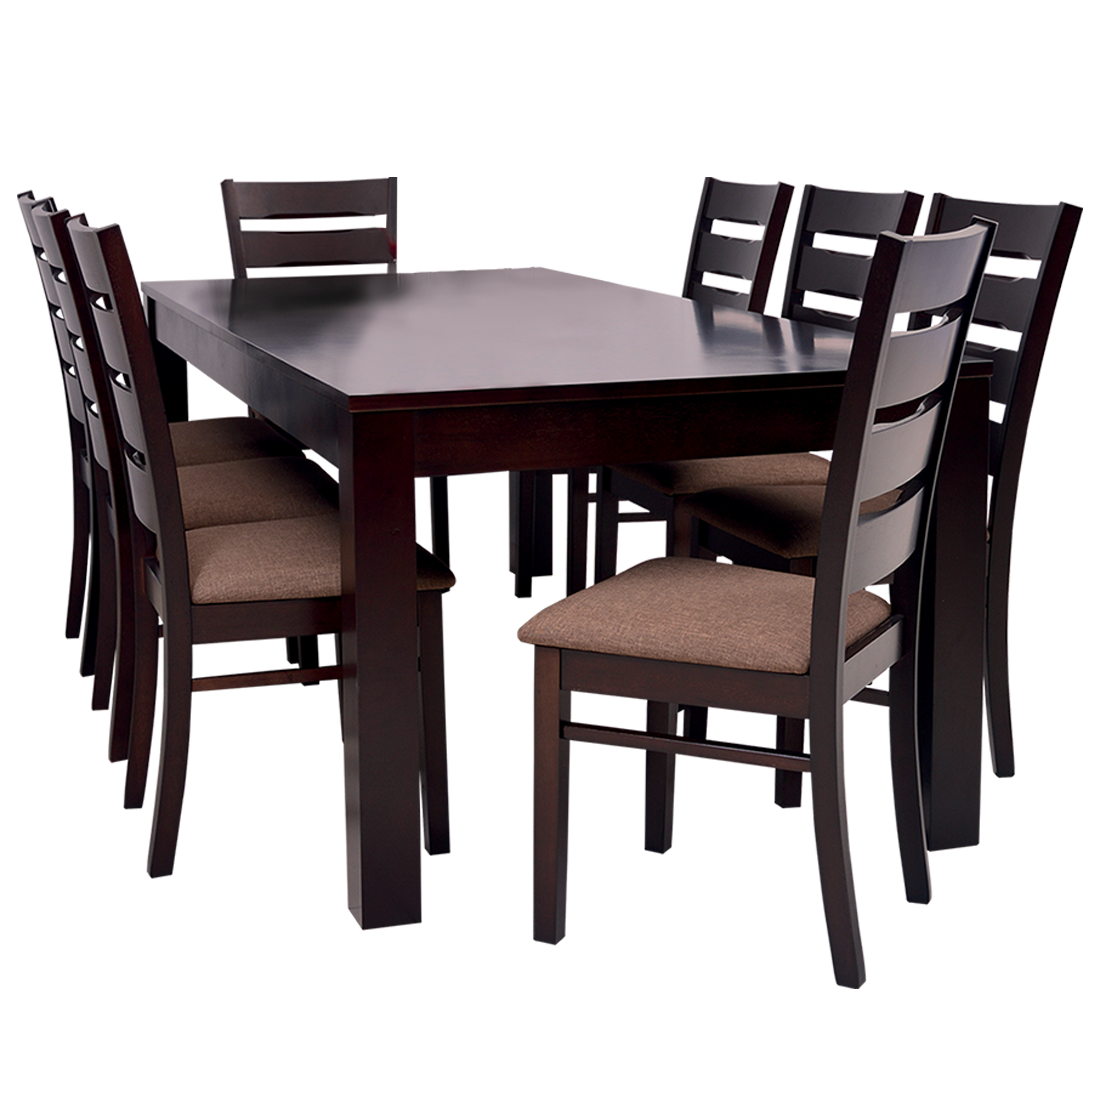 Picture of: Buy Avalon Dining Room Suit 8 Seater Online In Sri Lanka Singer